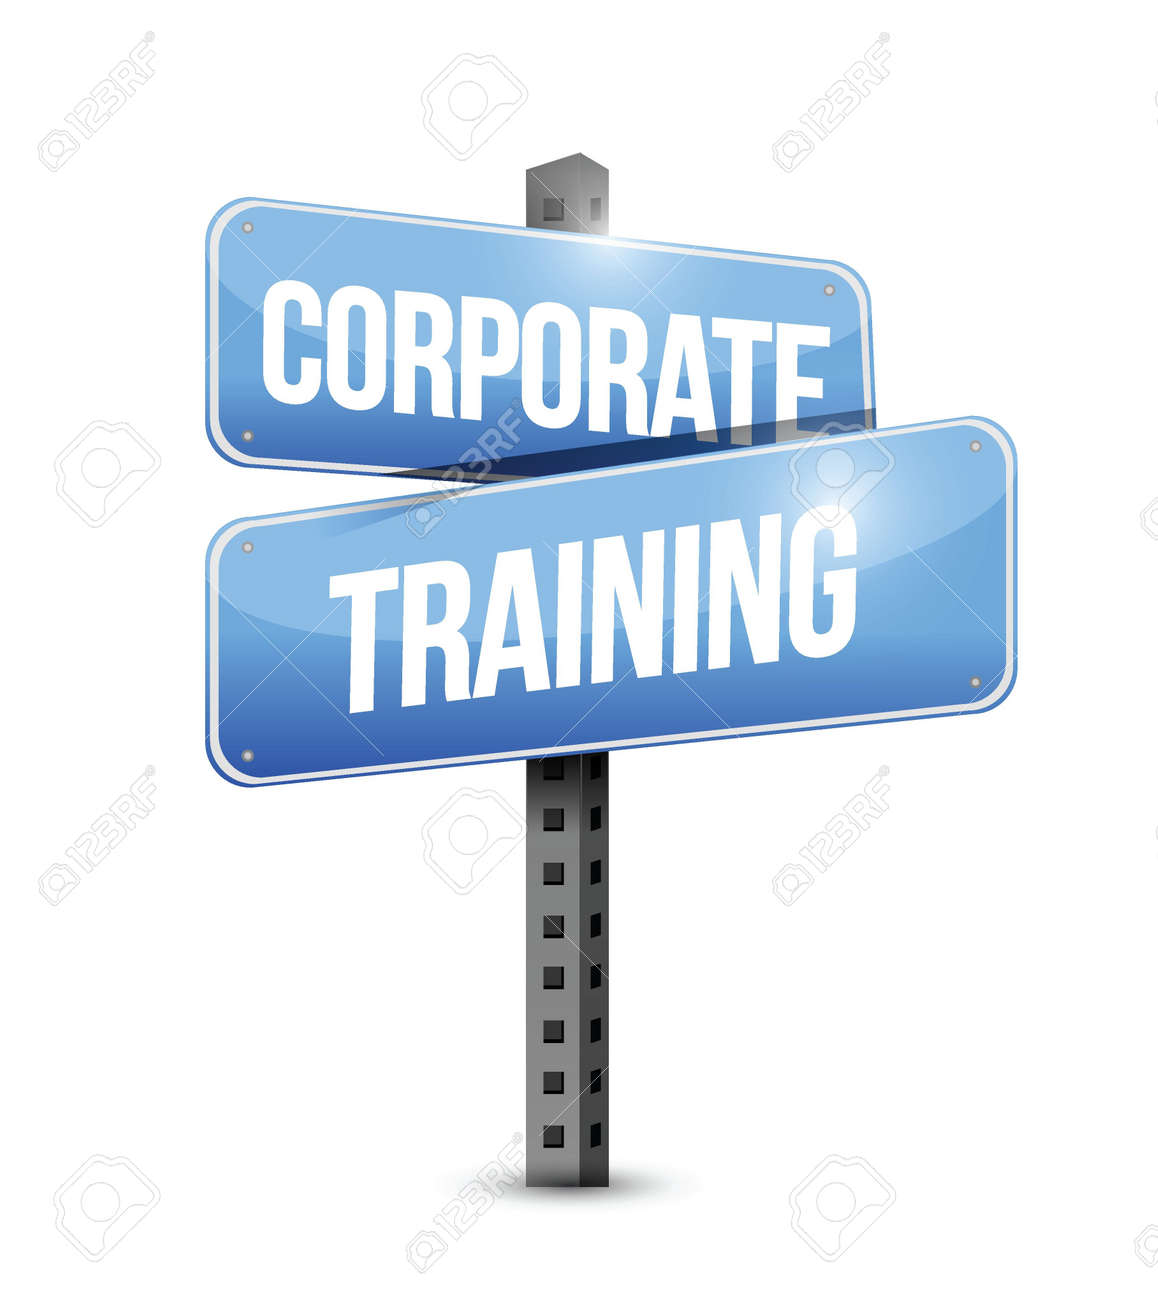 corporate training road sign illustration design over a white background Stock Vector - 22023867